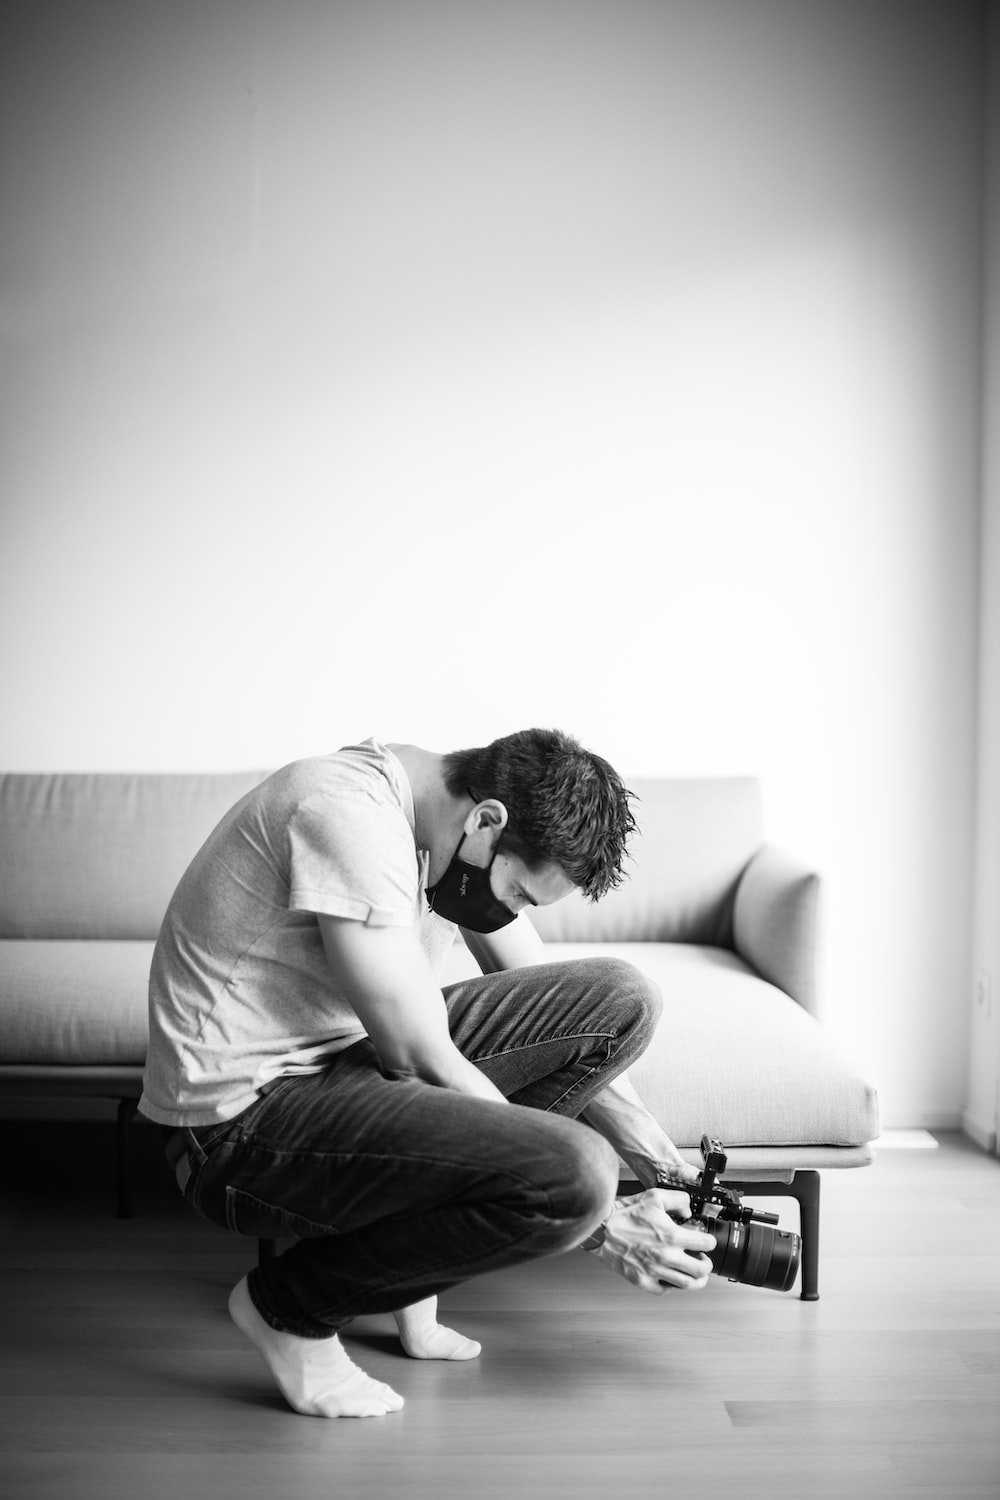 man in white t-shirt and black denim jeans sitting on couch